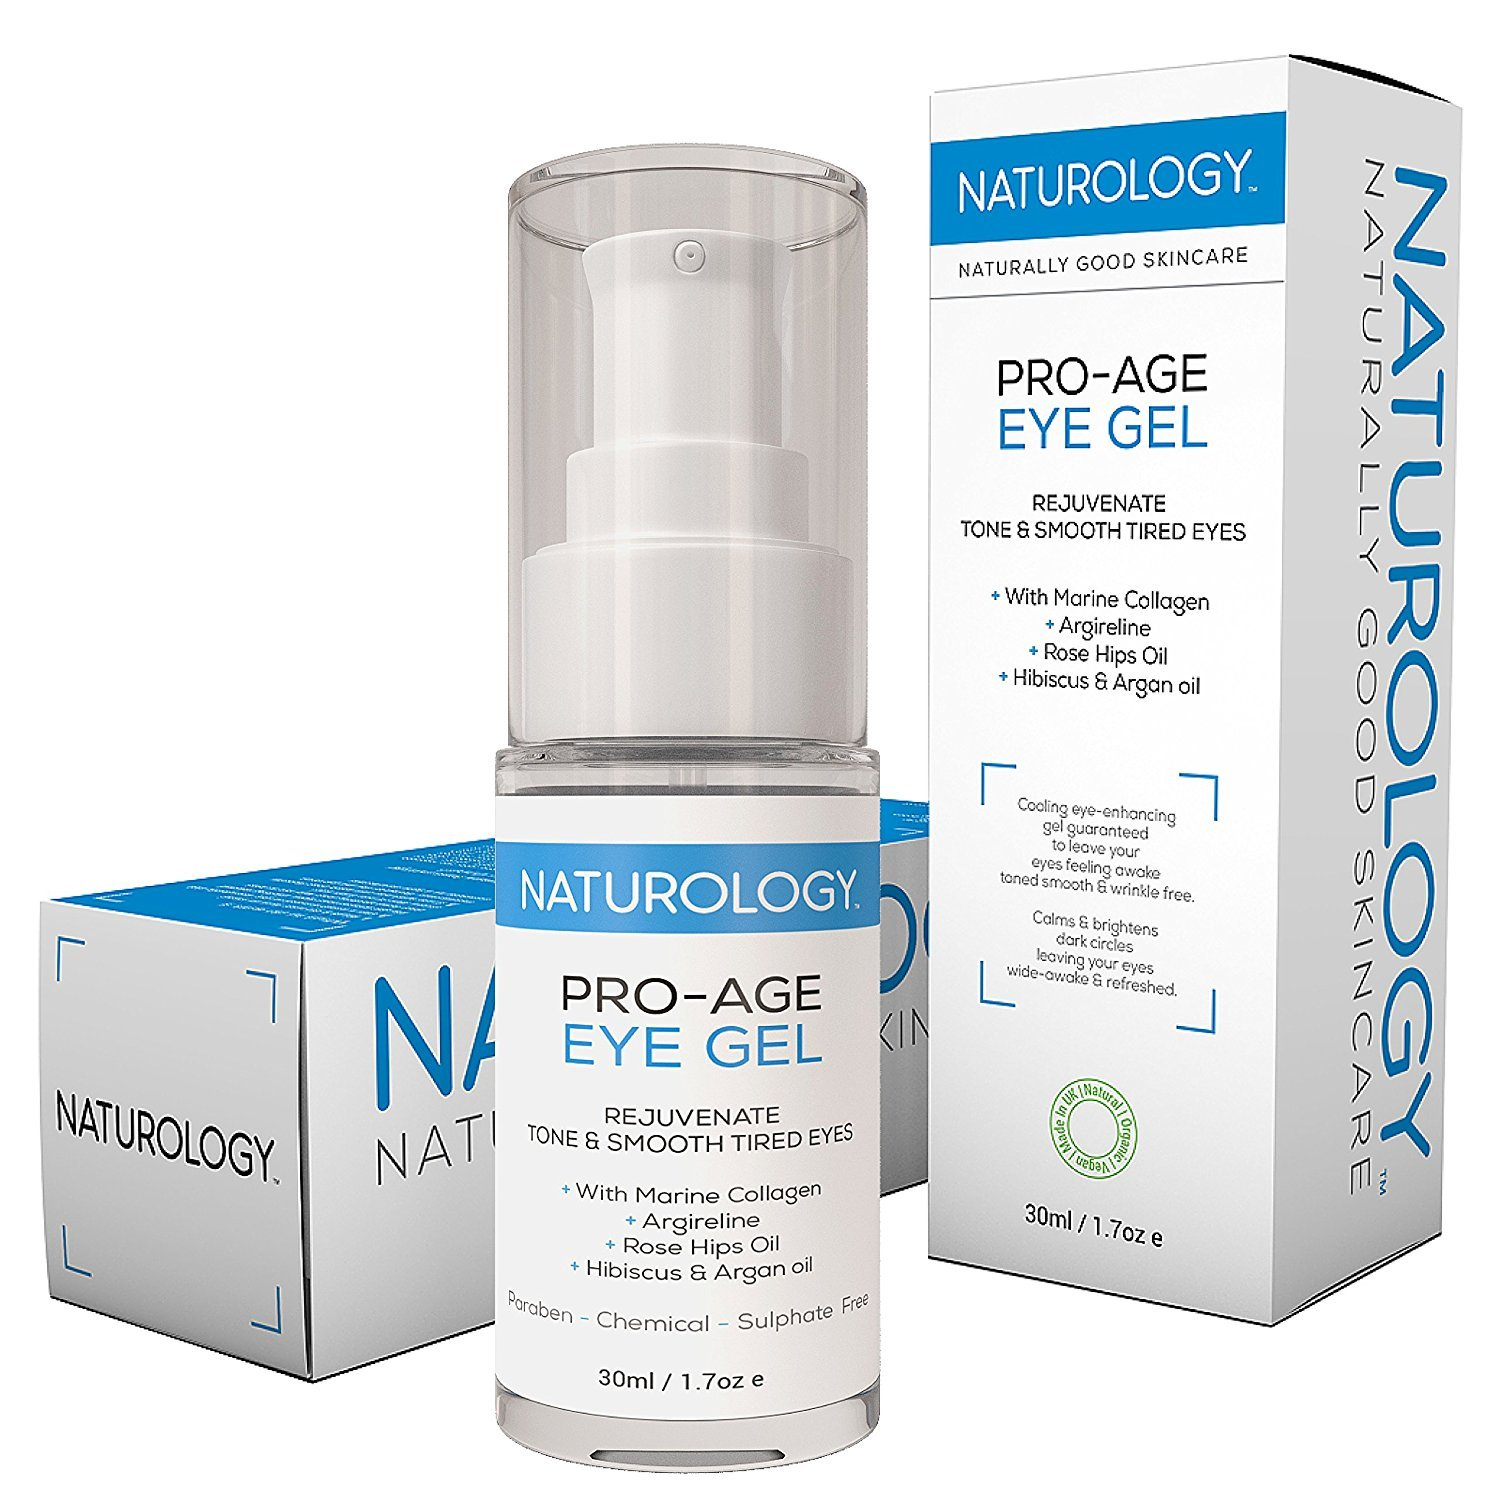 Naturology The UK's Most Natural, Organic Eye Serum for dark circles and wrinkles, reduce your bags & puffy eyes with the best anti aging eye gel that works in a MASSIVE 30ML bottle